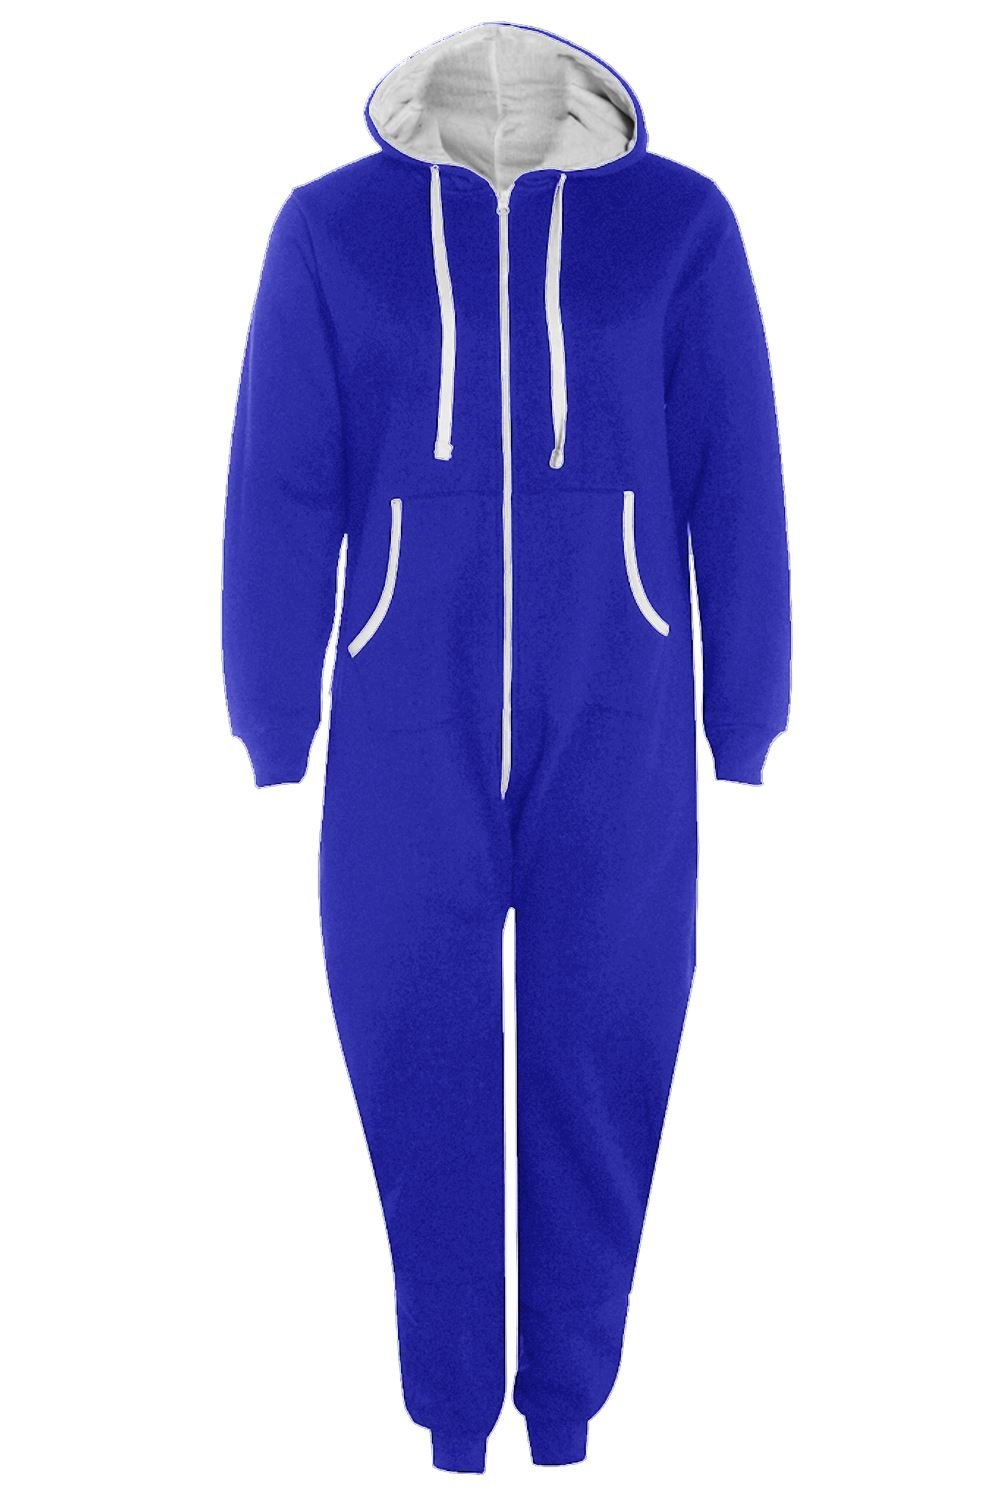 Womens Ladies All In One Hooded Kangaroo Pocket Zip Up Playsuit Jumpsuit Onesie